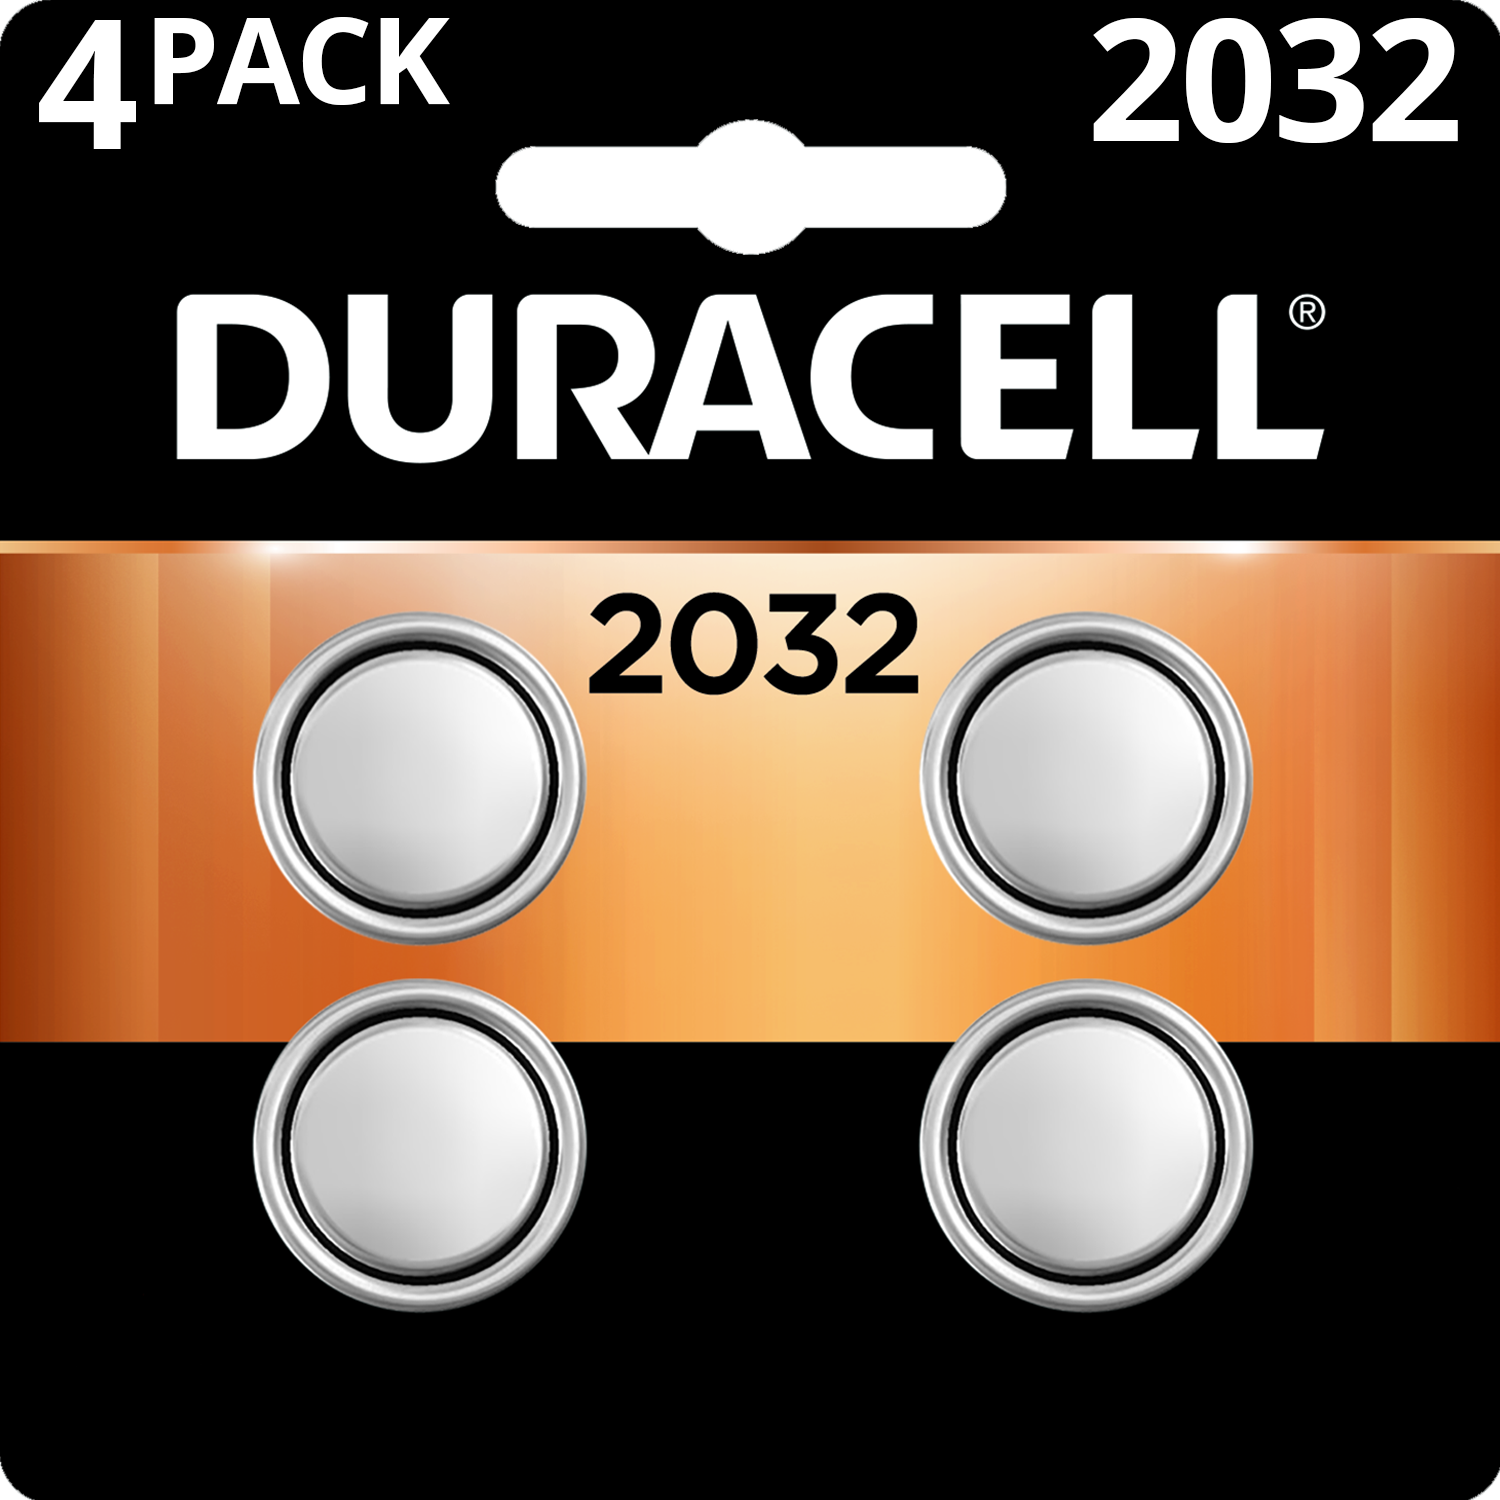 Duracell 3V Lithium Coin Battery 2032, 4 Pack Batteries